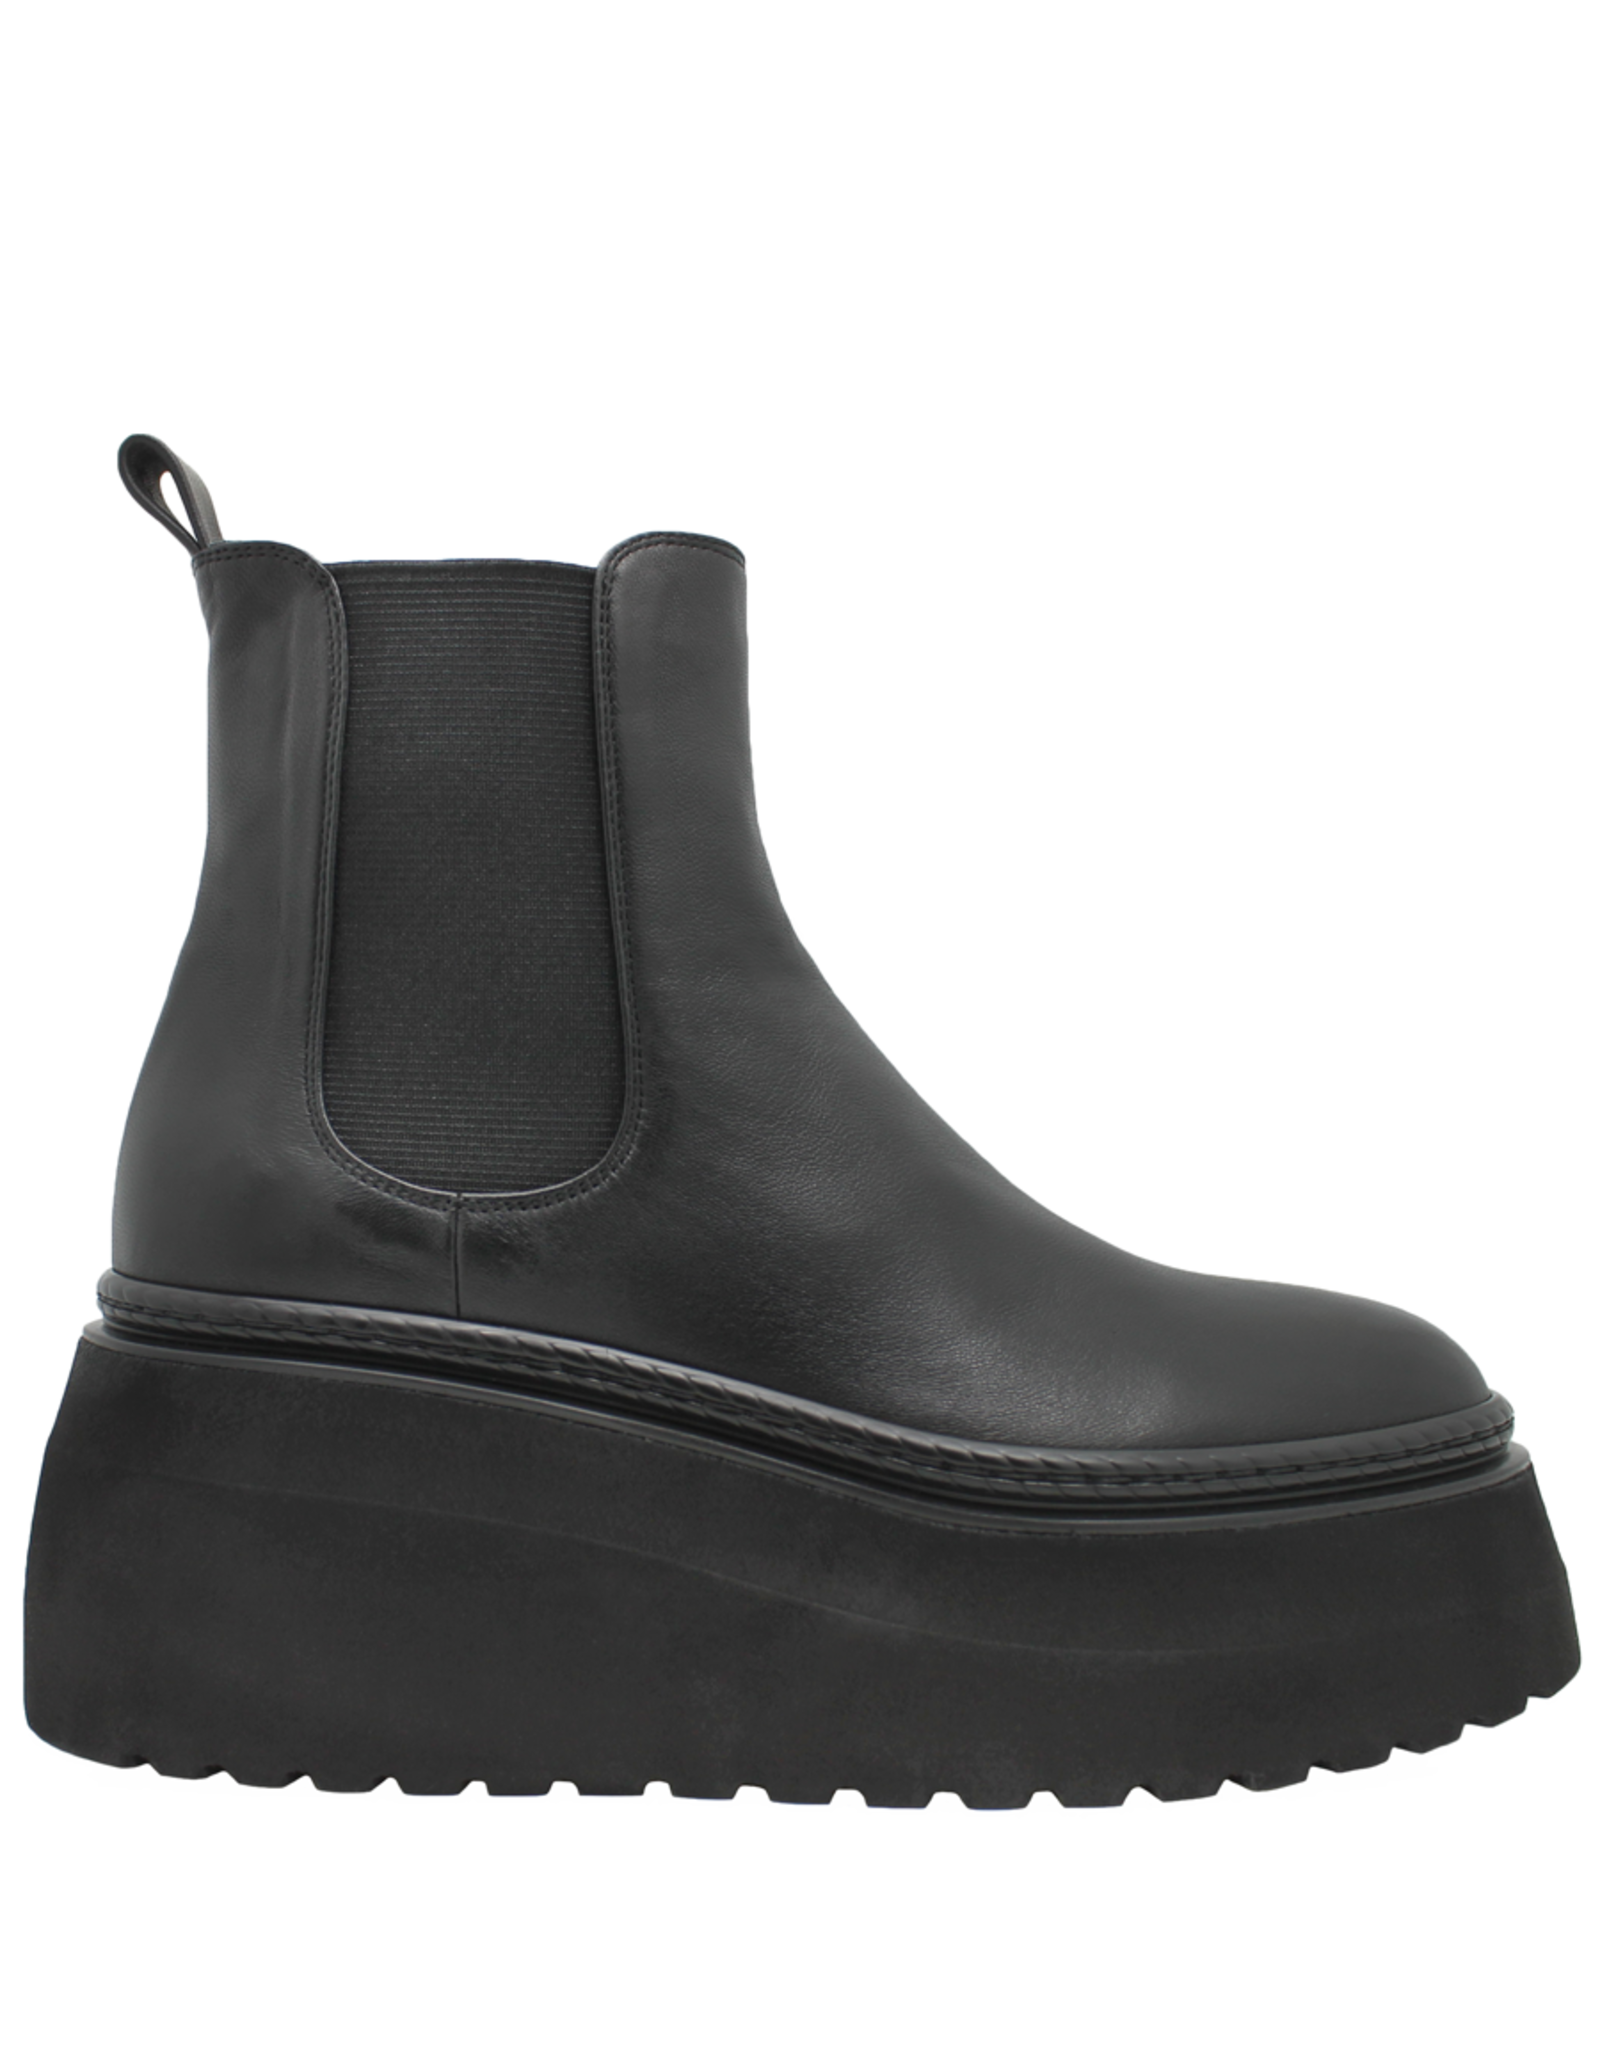 Now Now Black Leather Chelsea Wedge 7288